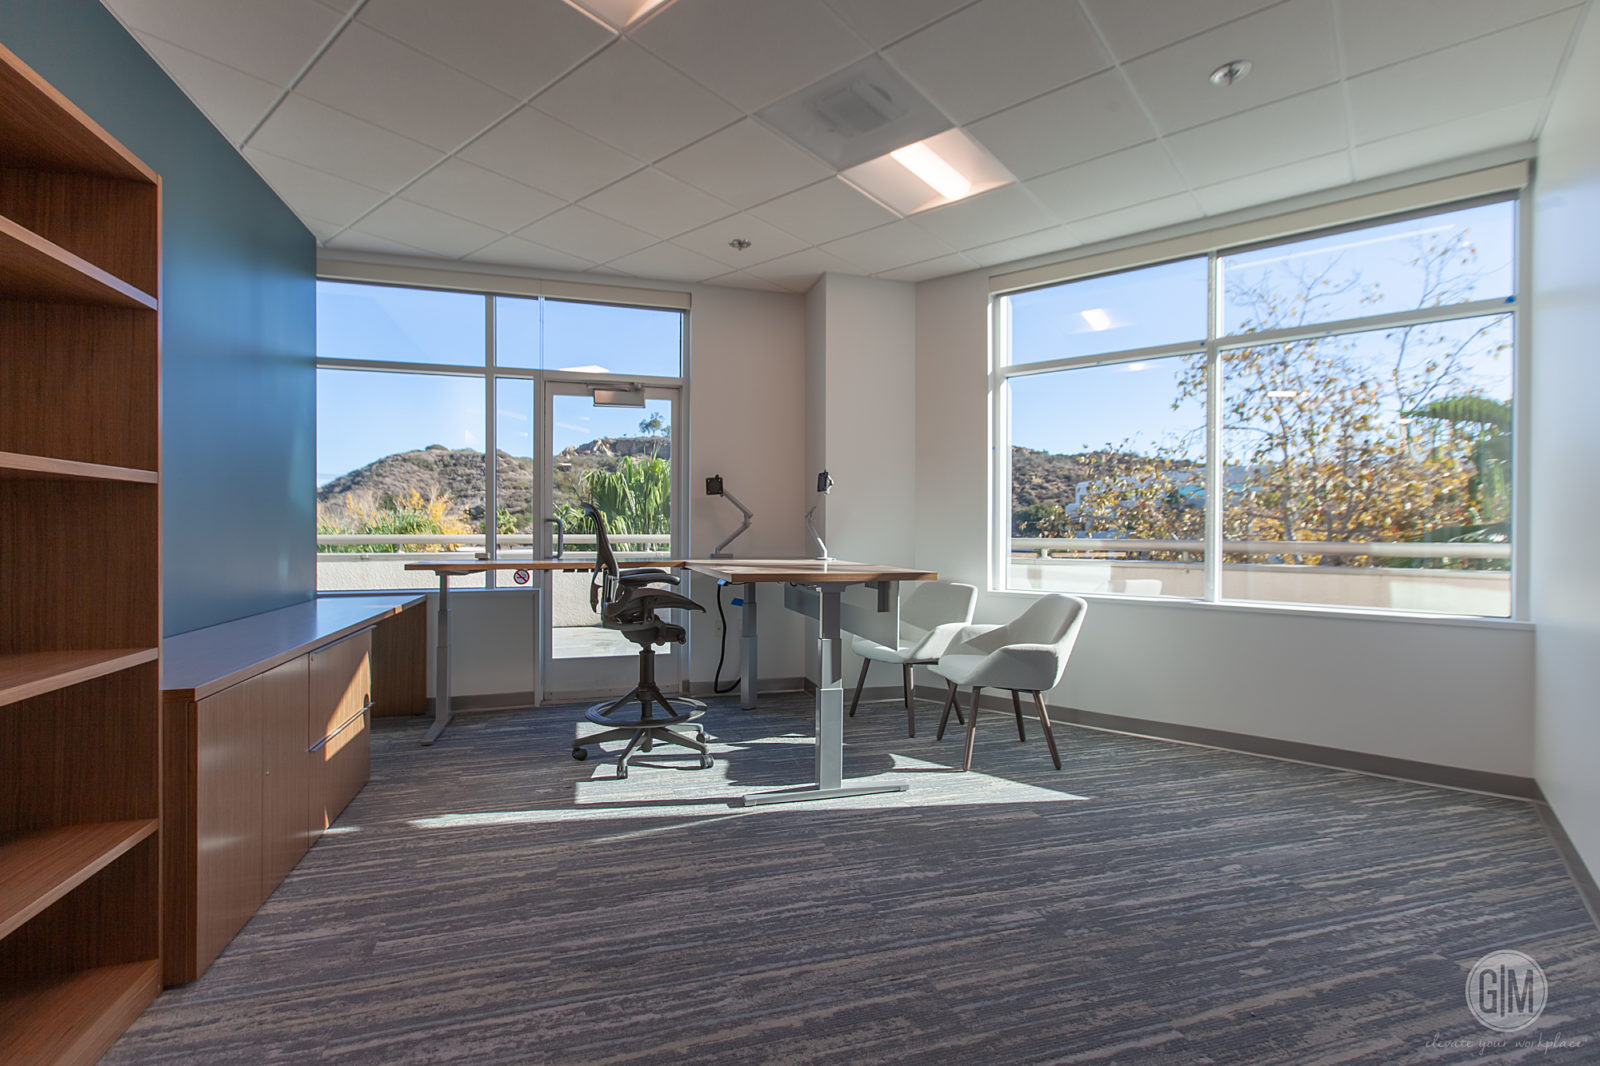 Perkins Coie San Diego Private Office